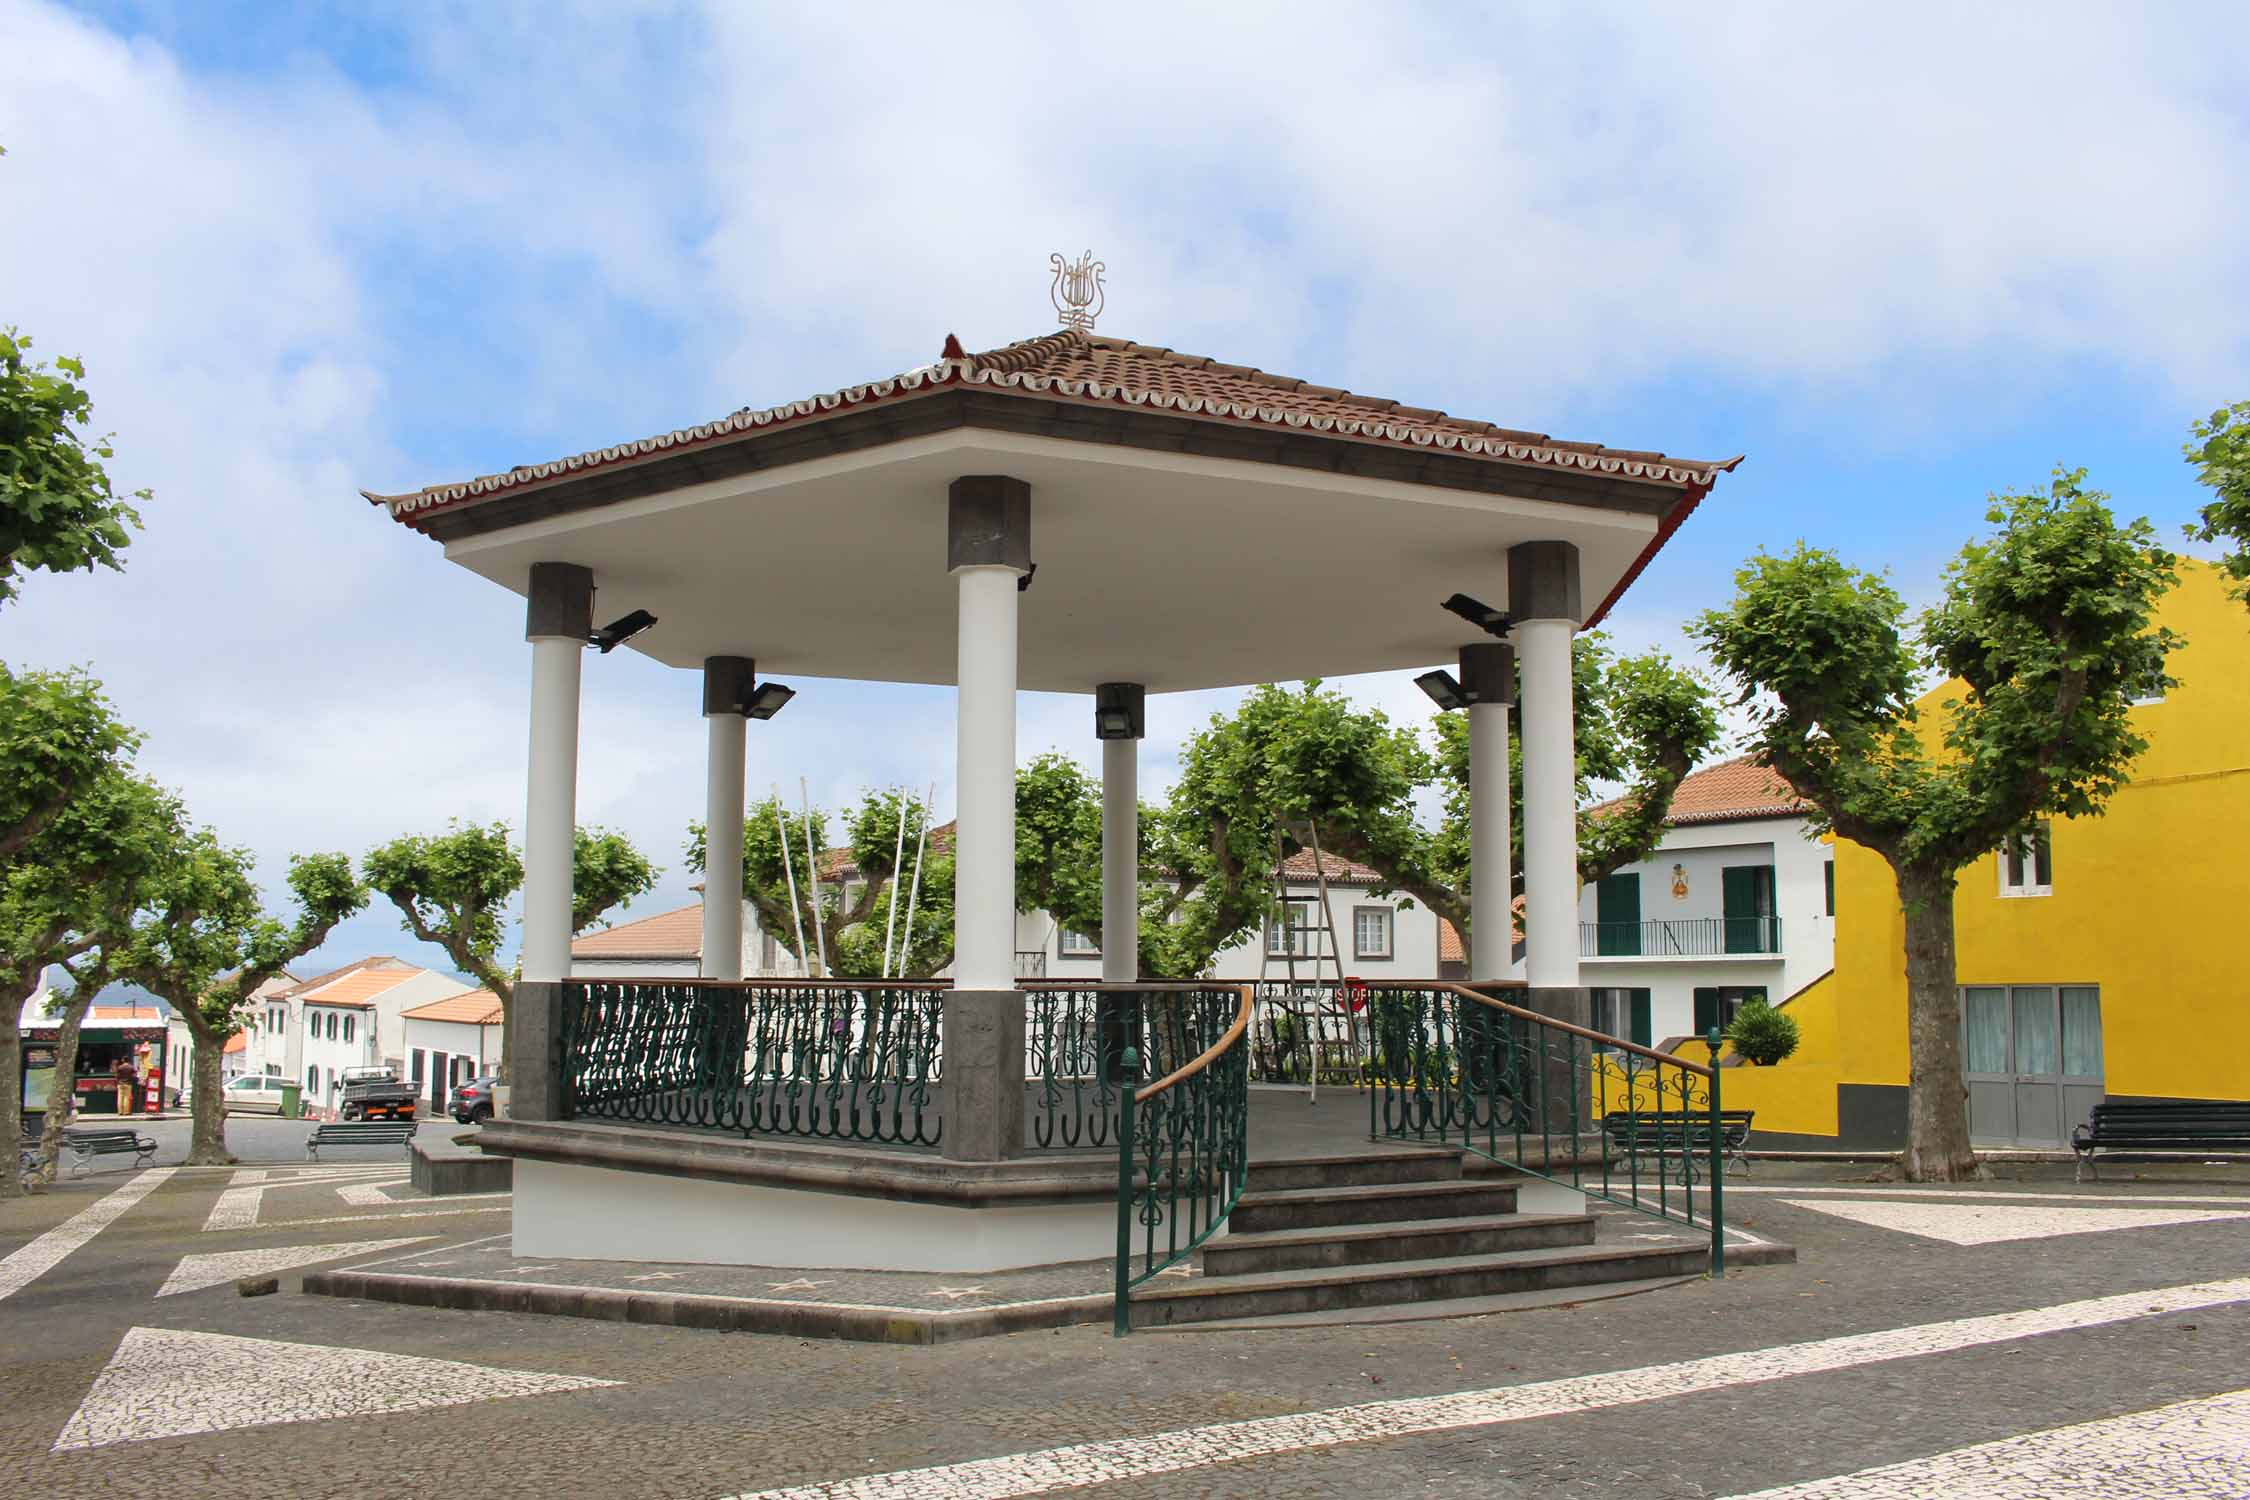 A kiosk in the village of Mosteiros, São Miguel island, Azores